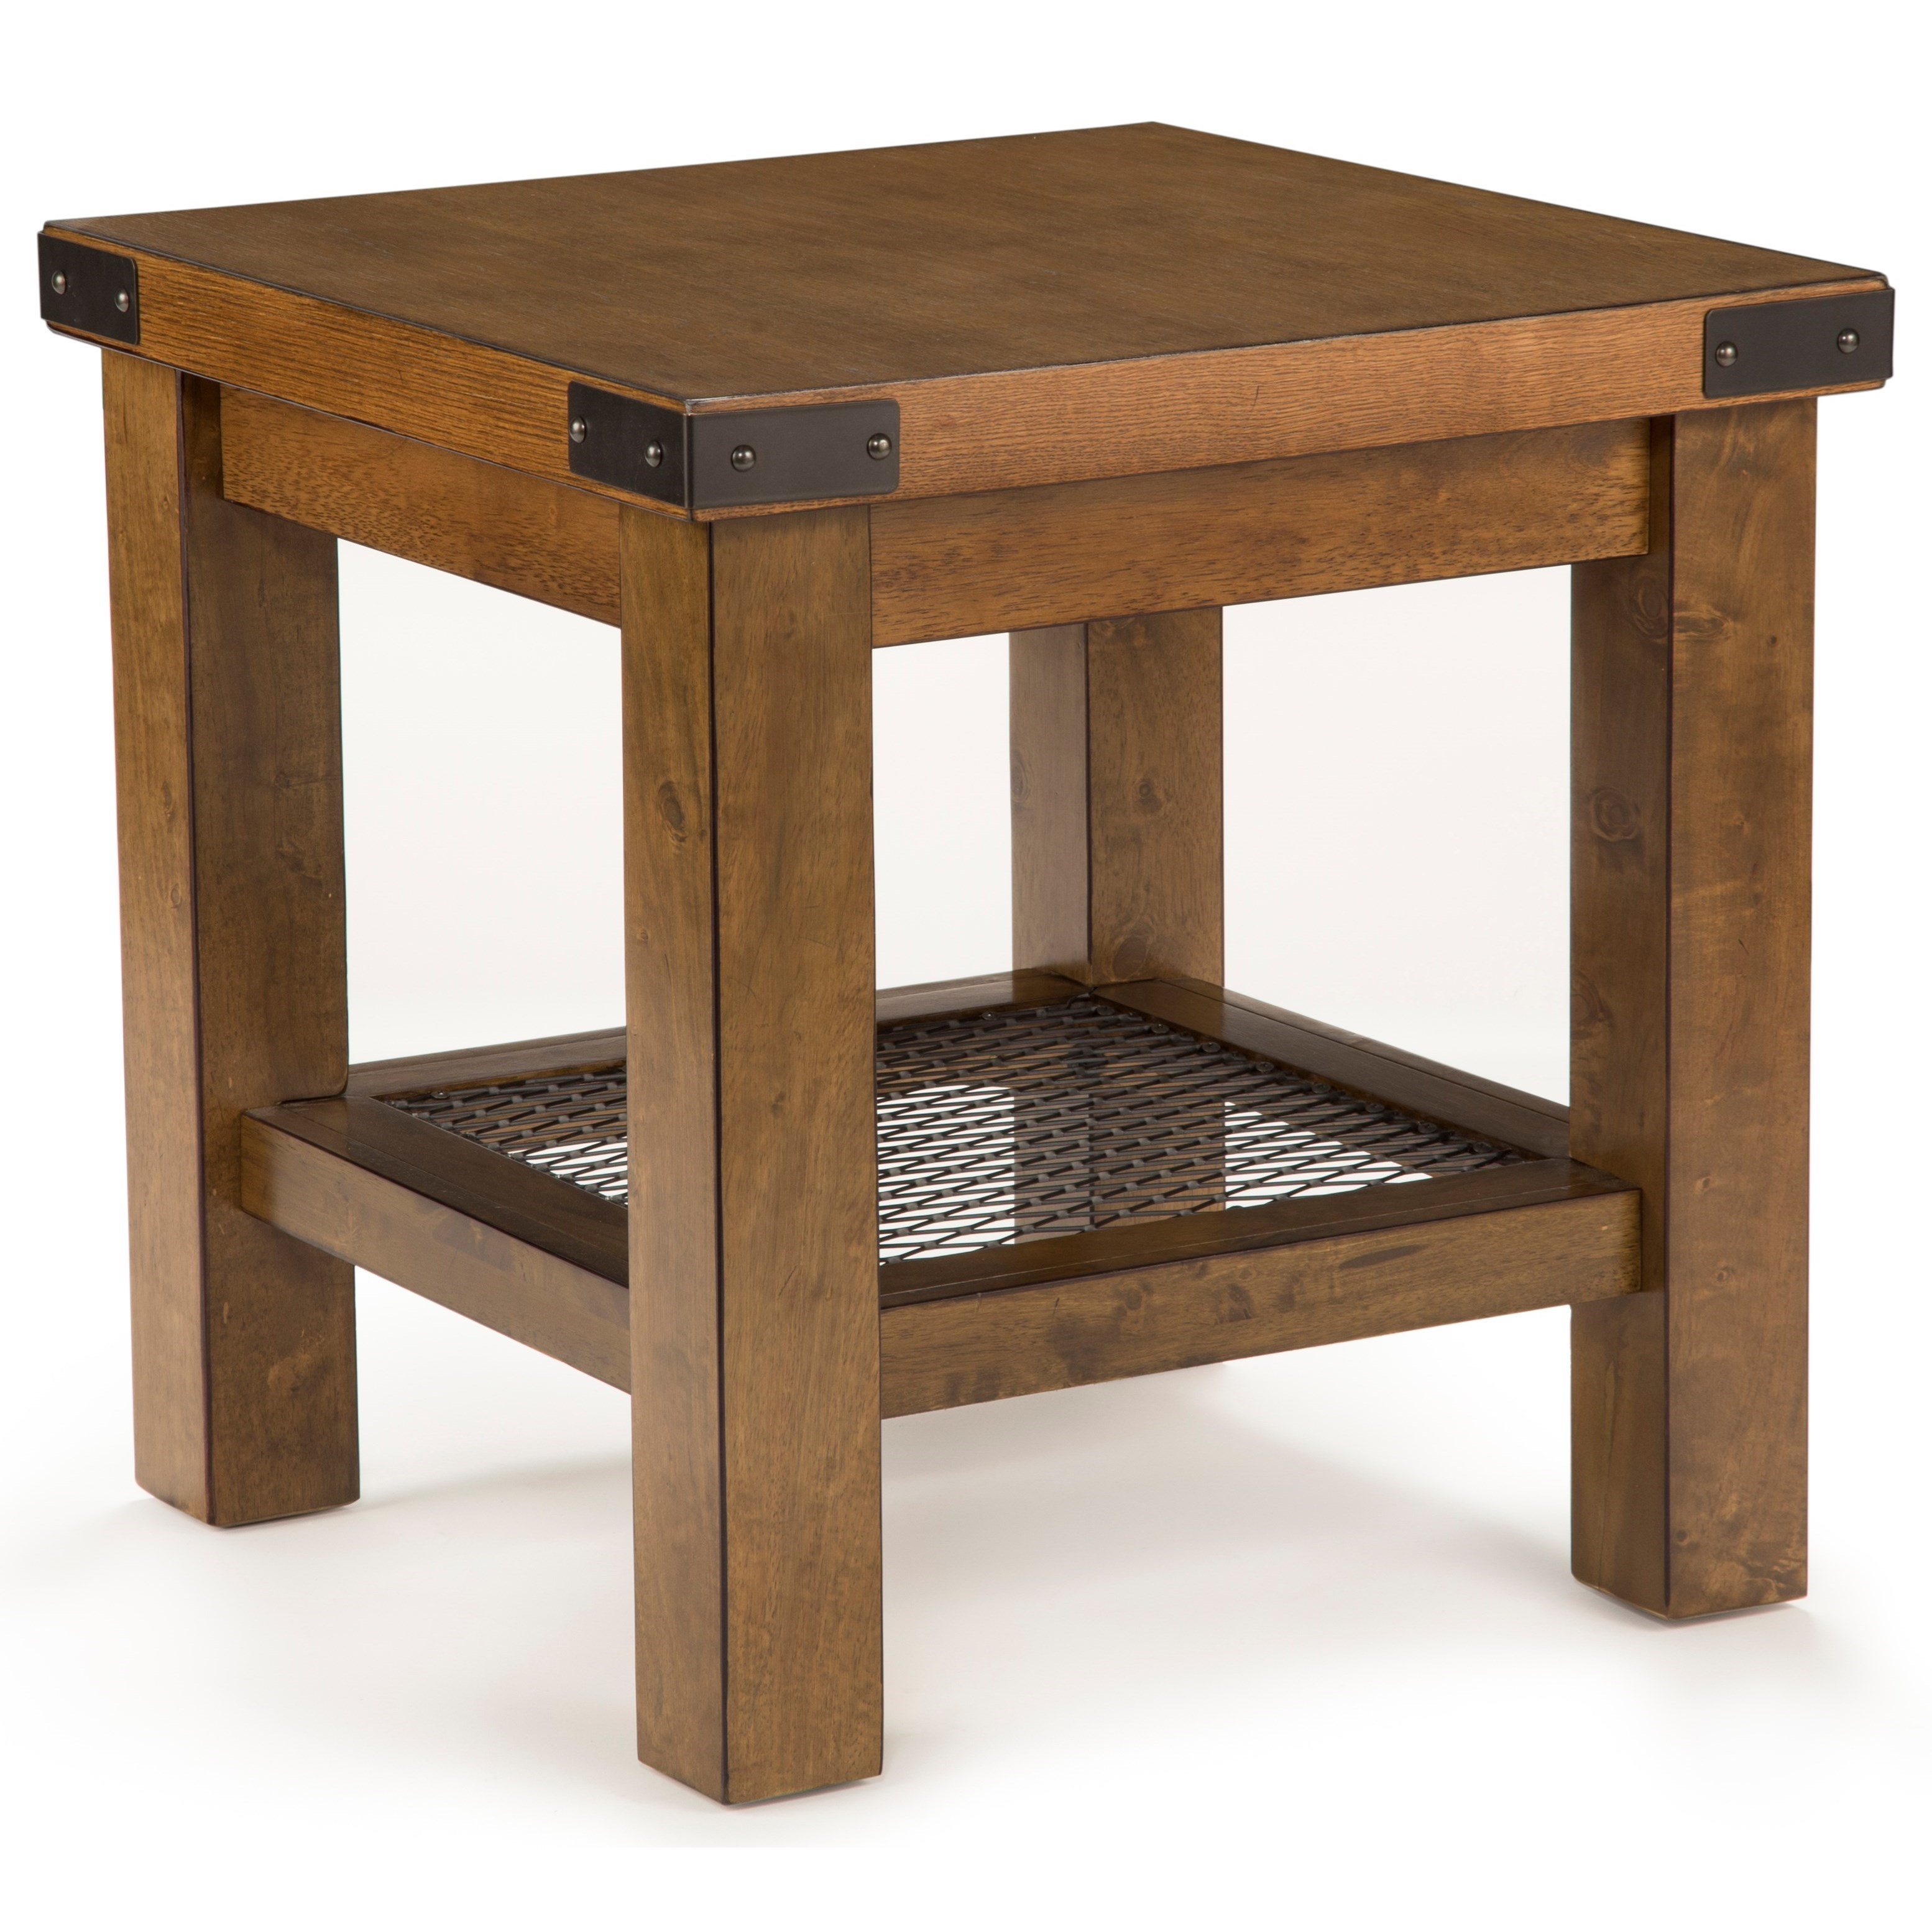 Hailee End Table by Steve Silver at Northeast Factory Direct